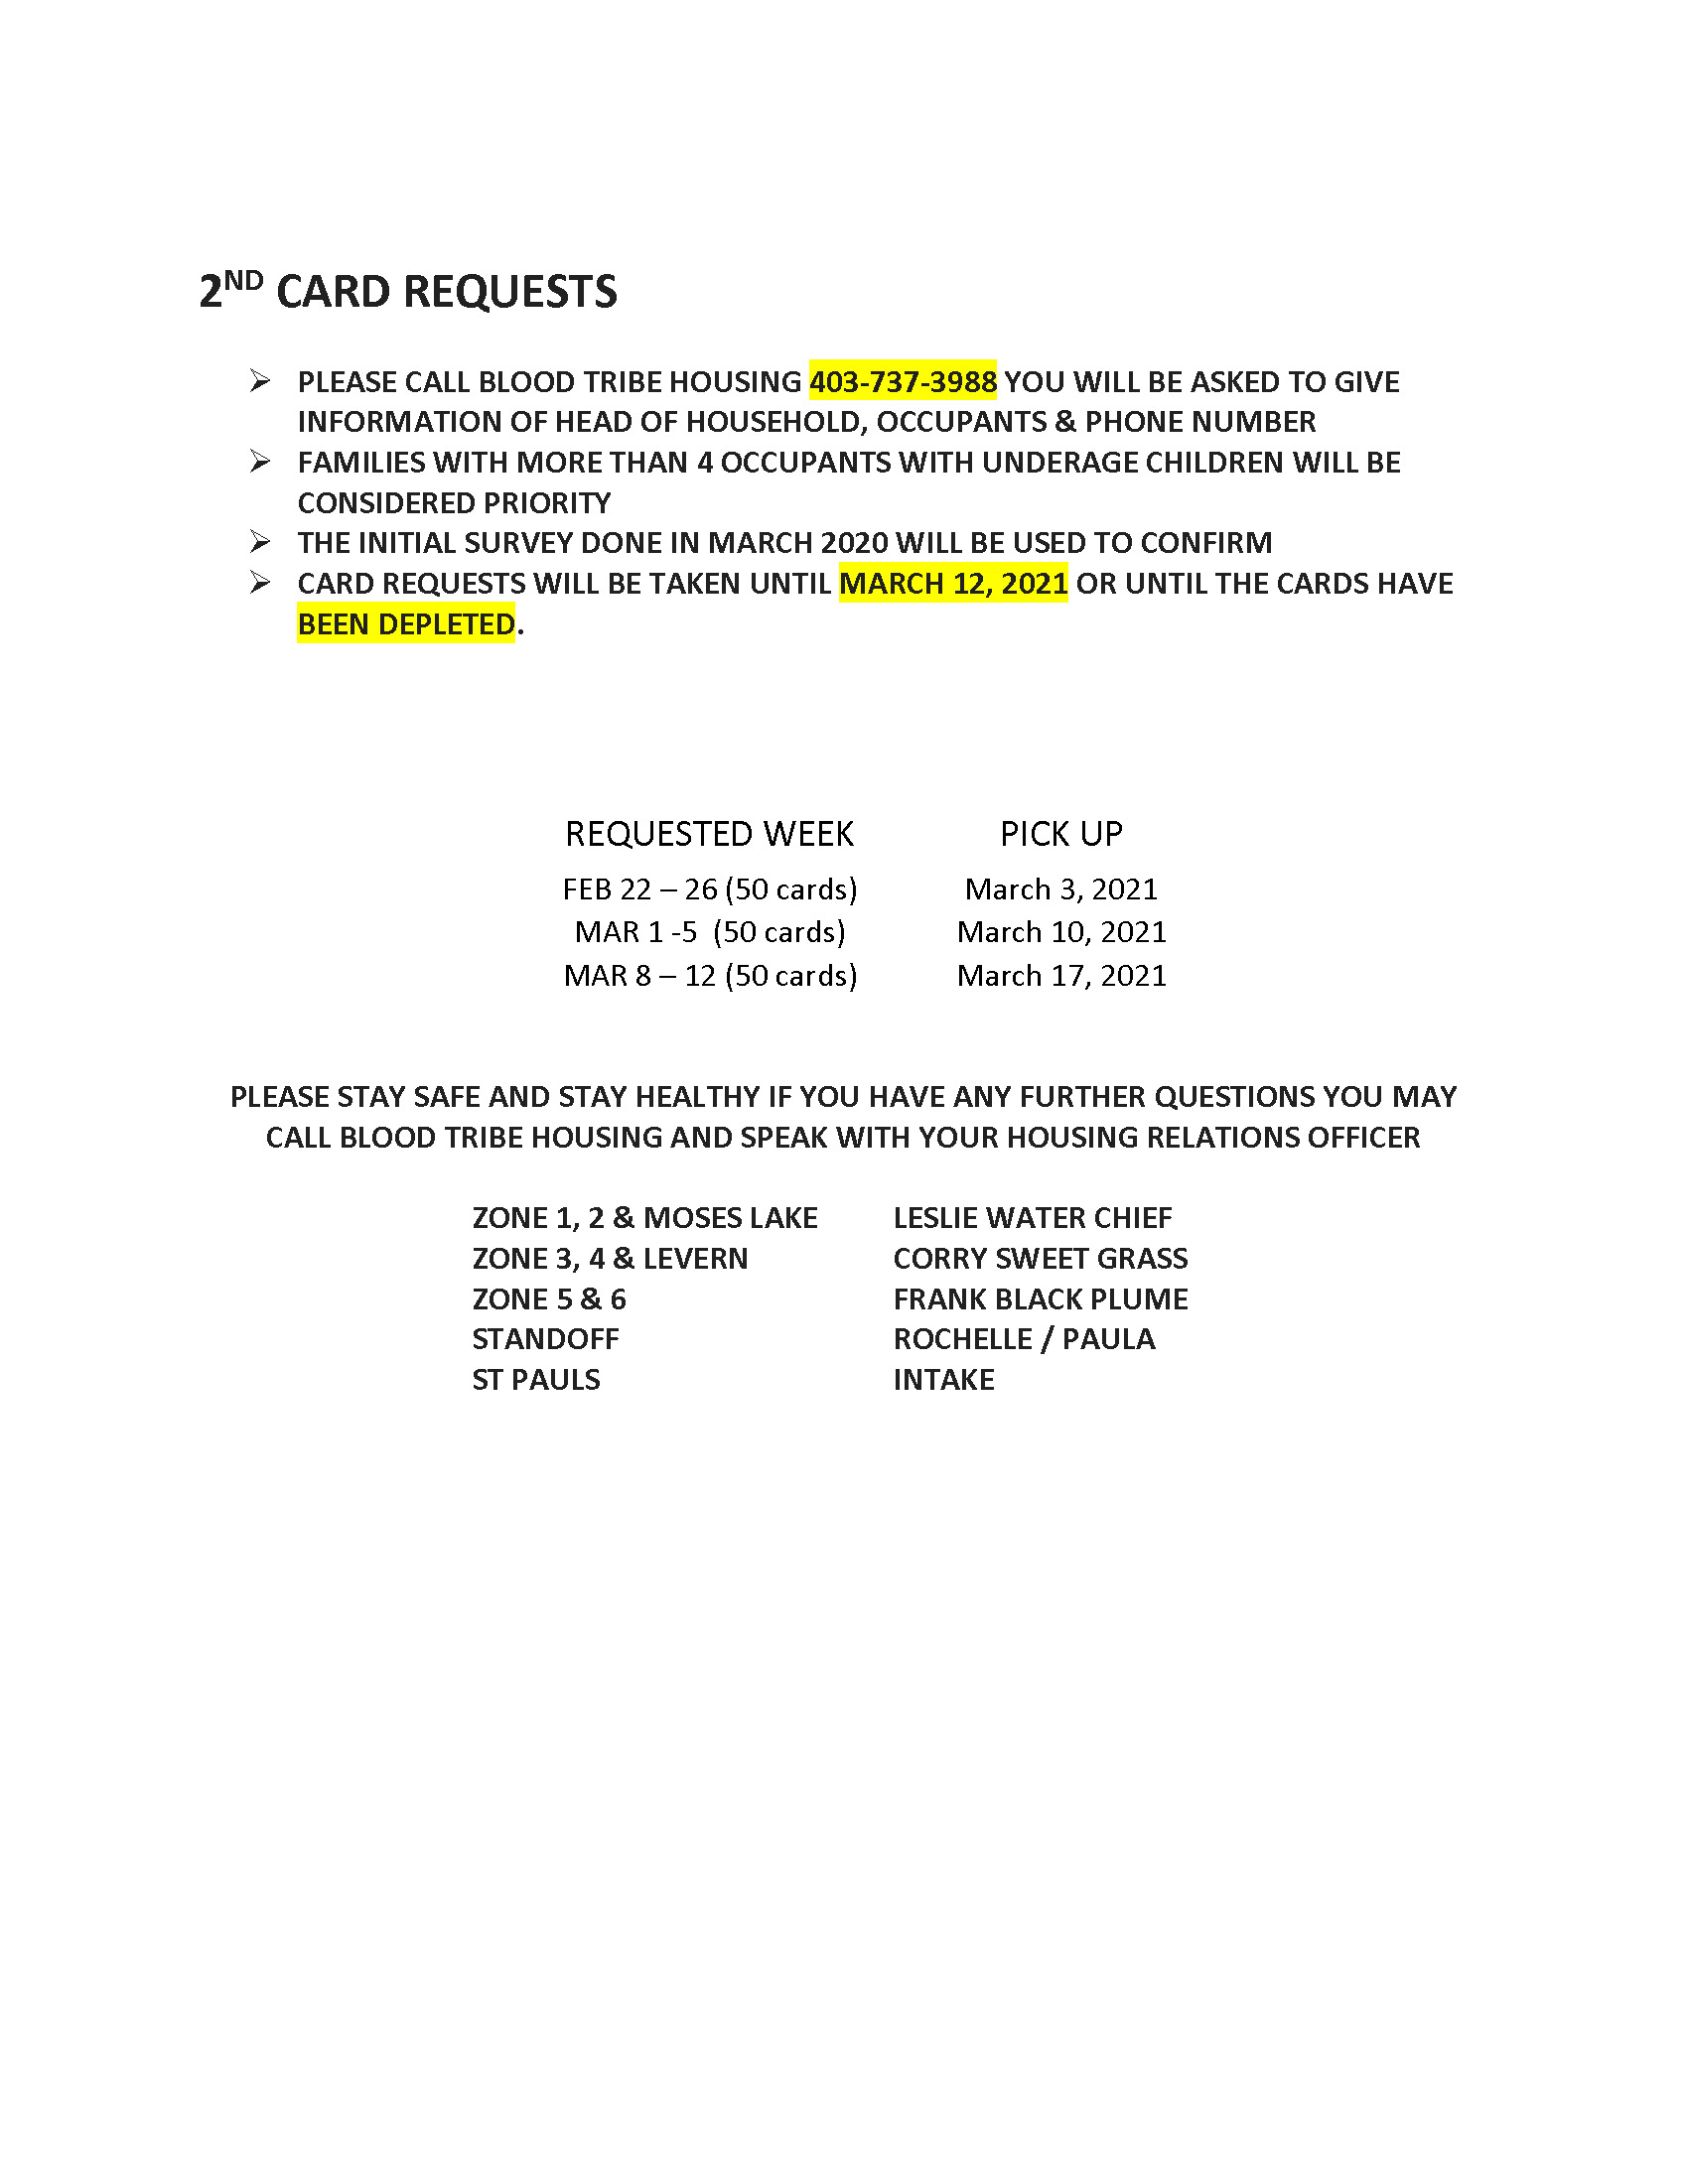 On-Reserve Gift Card Update - (Mar. 5, 2021) - Page 2